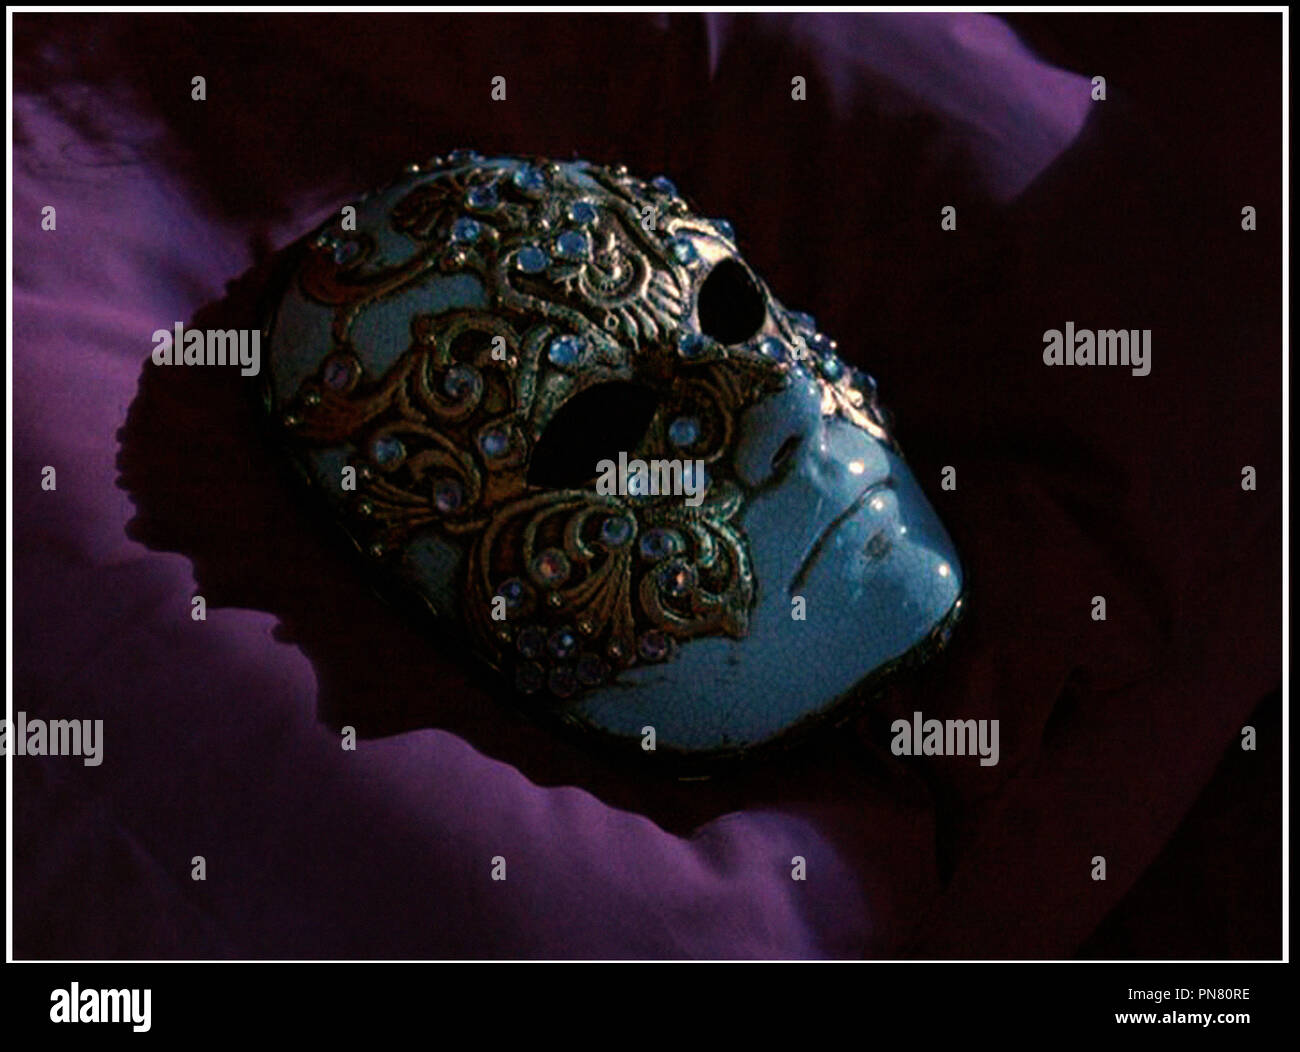 Prod DB © Warner - Hobby Films - Pole Star / DR EYES WIDE SHUT (EYES WIDE SHUT) de Stanley Kubrick 1999 USA / GB masque d'apres le roman de Arthur Schnitzler 'TRAUMNOVELLE' - Stock Image